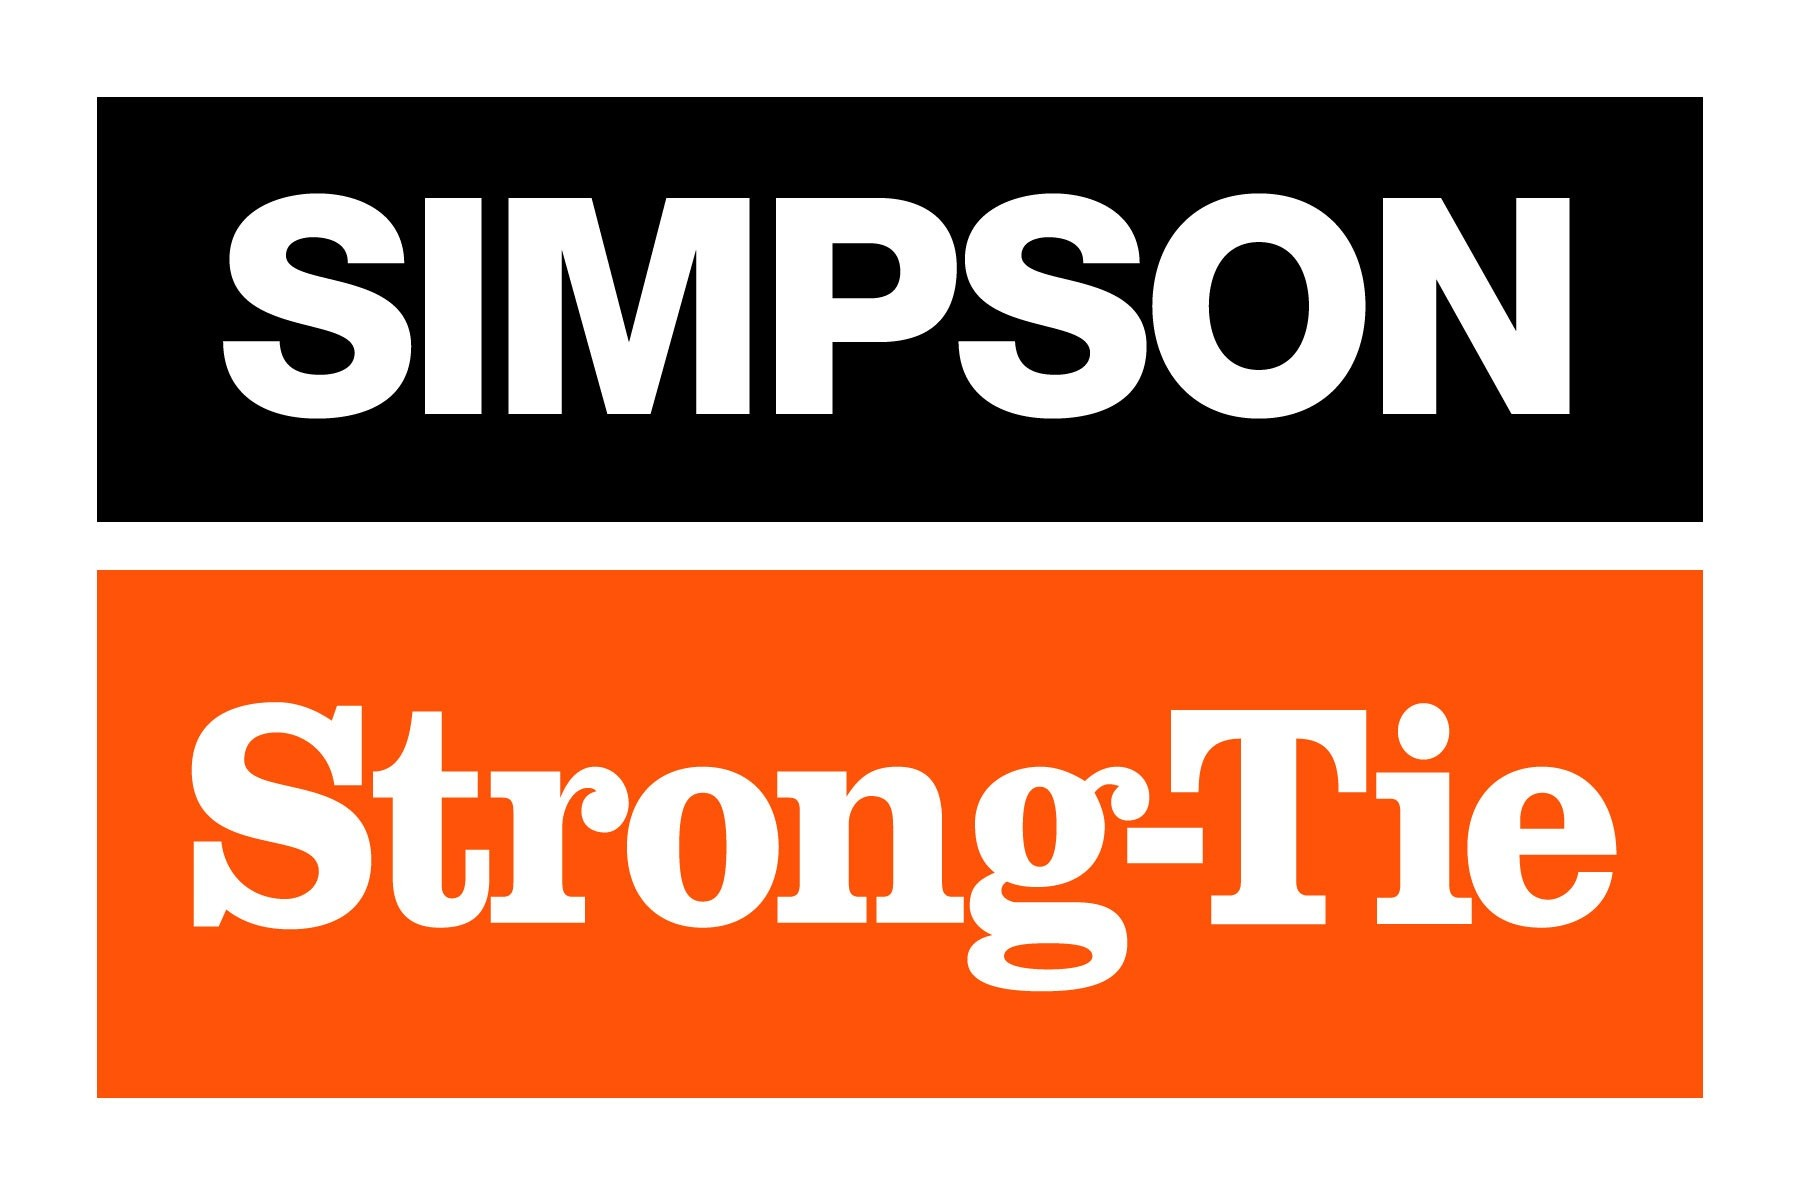 Simpson - Strong tie